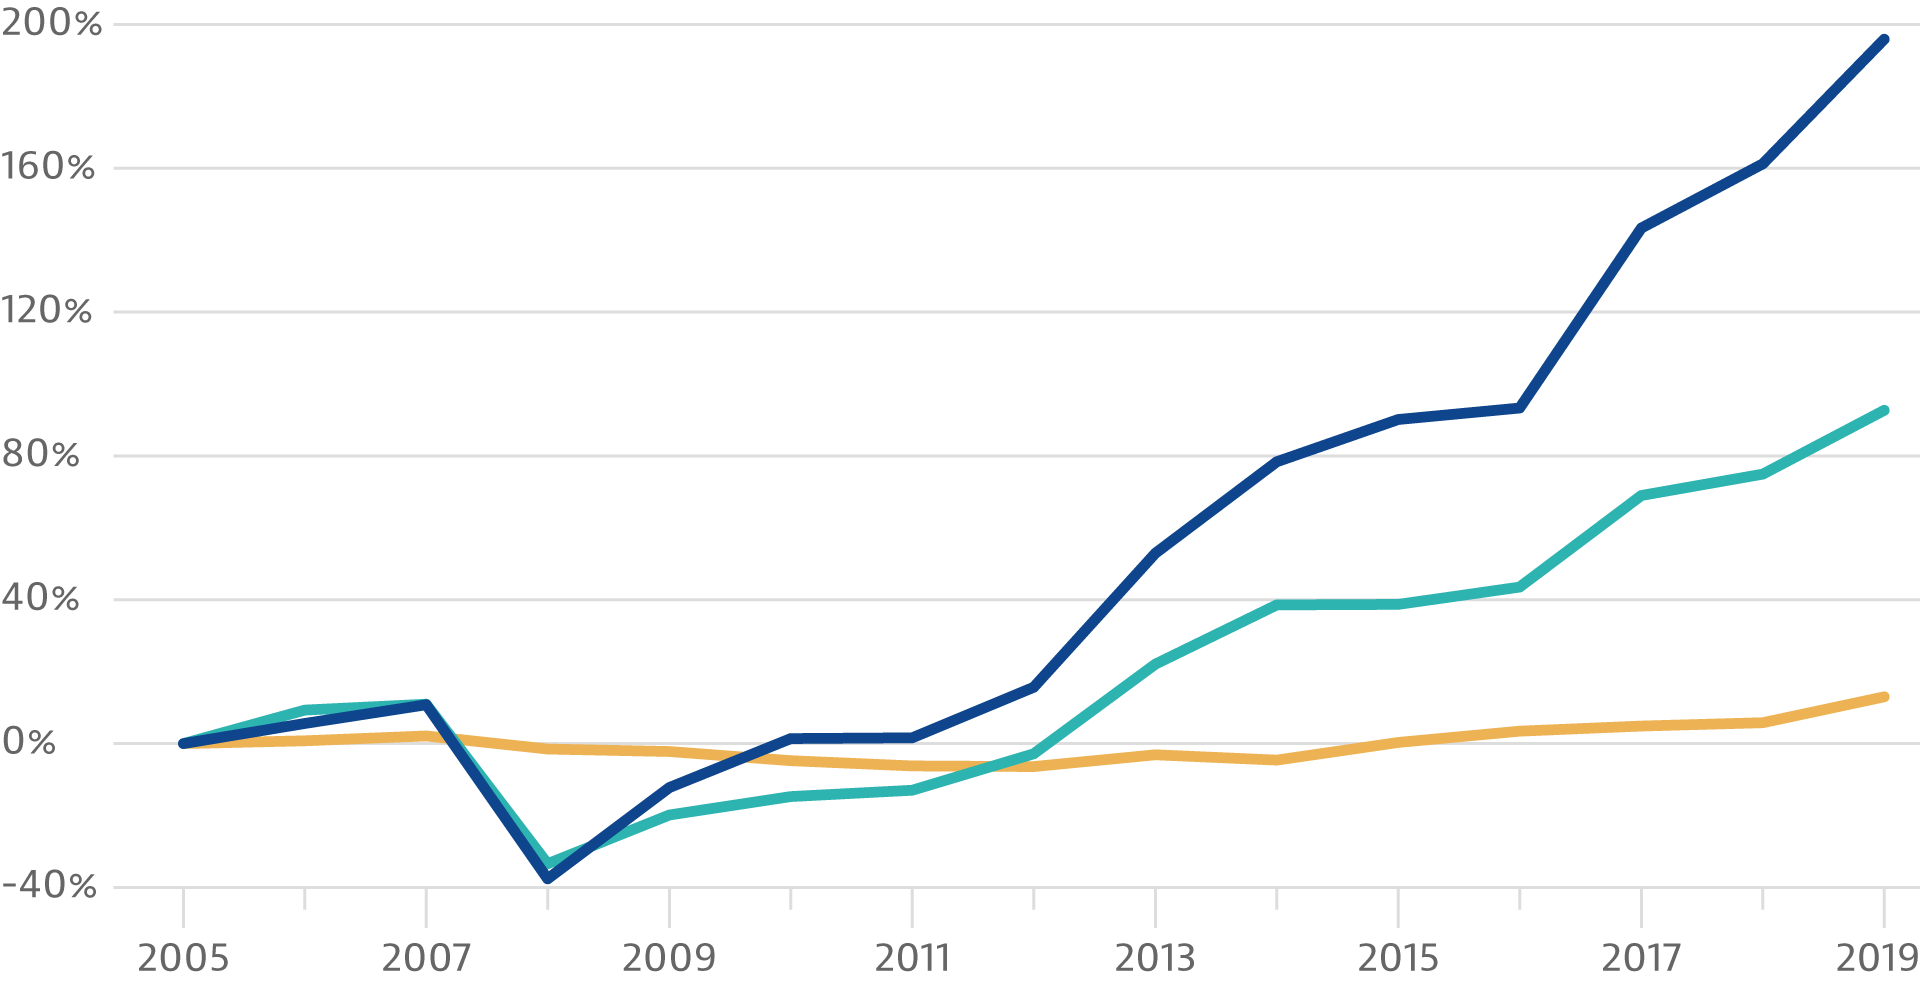 How U.S. median household income compared to the Stock Market from 2005 to 2019.